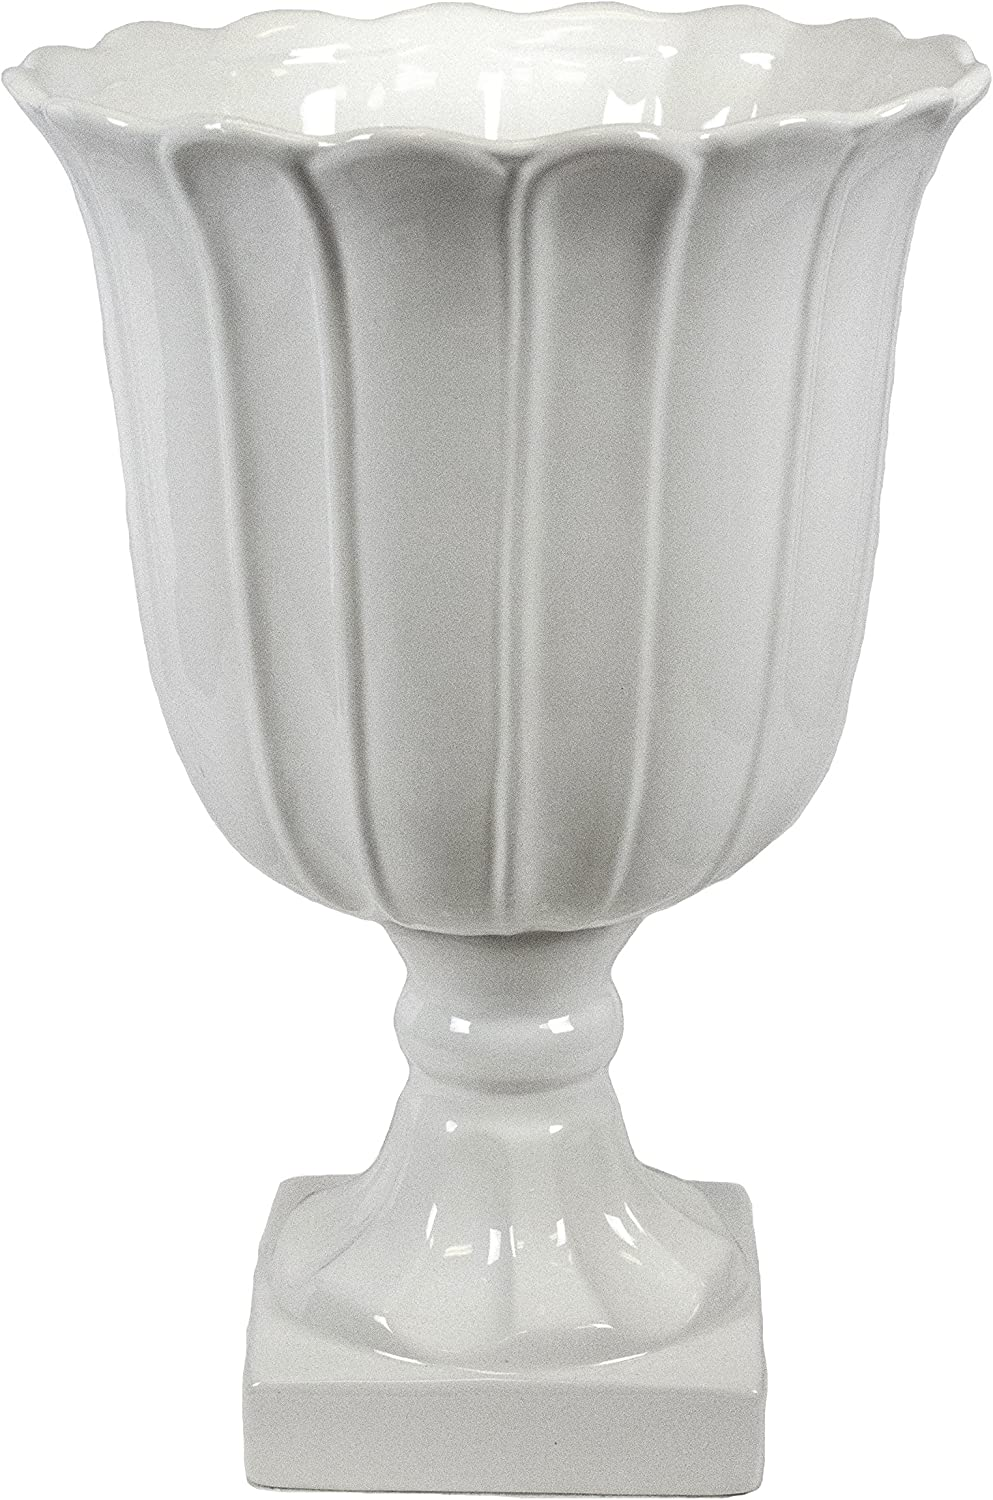 Sagebrook Home VC10479-01 Footed Vase, White Ceramic, 11 x 11 x 16 Inches